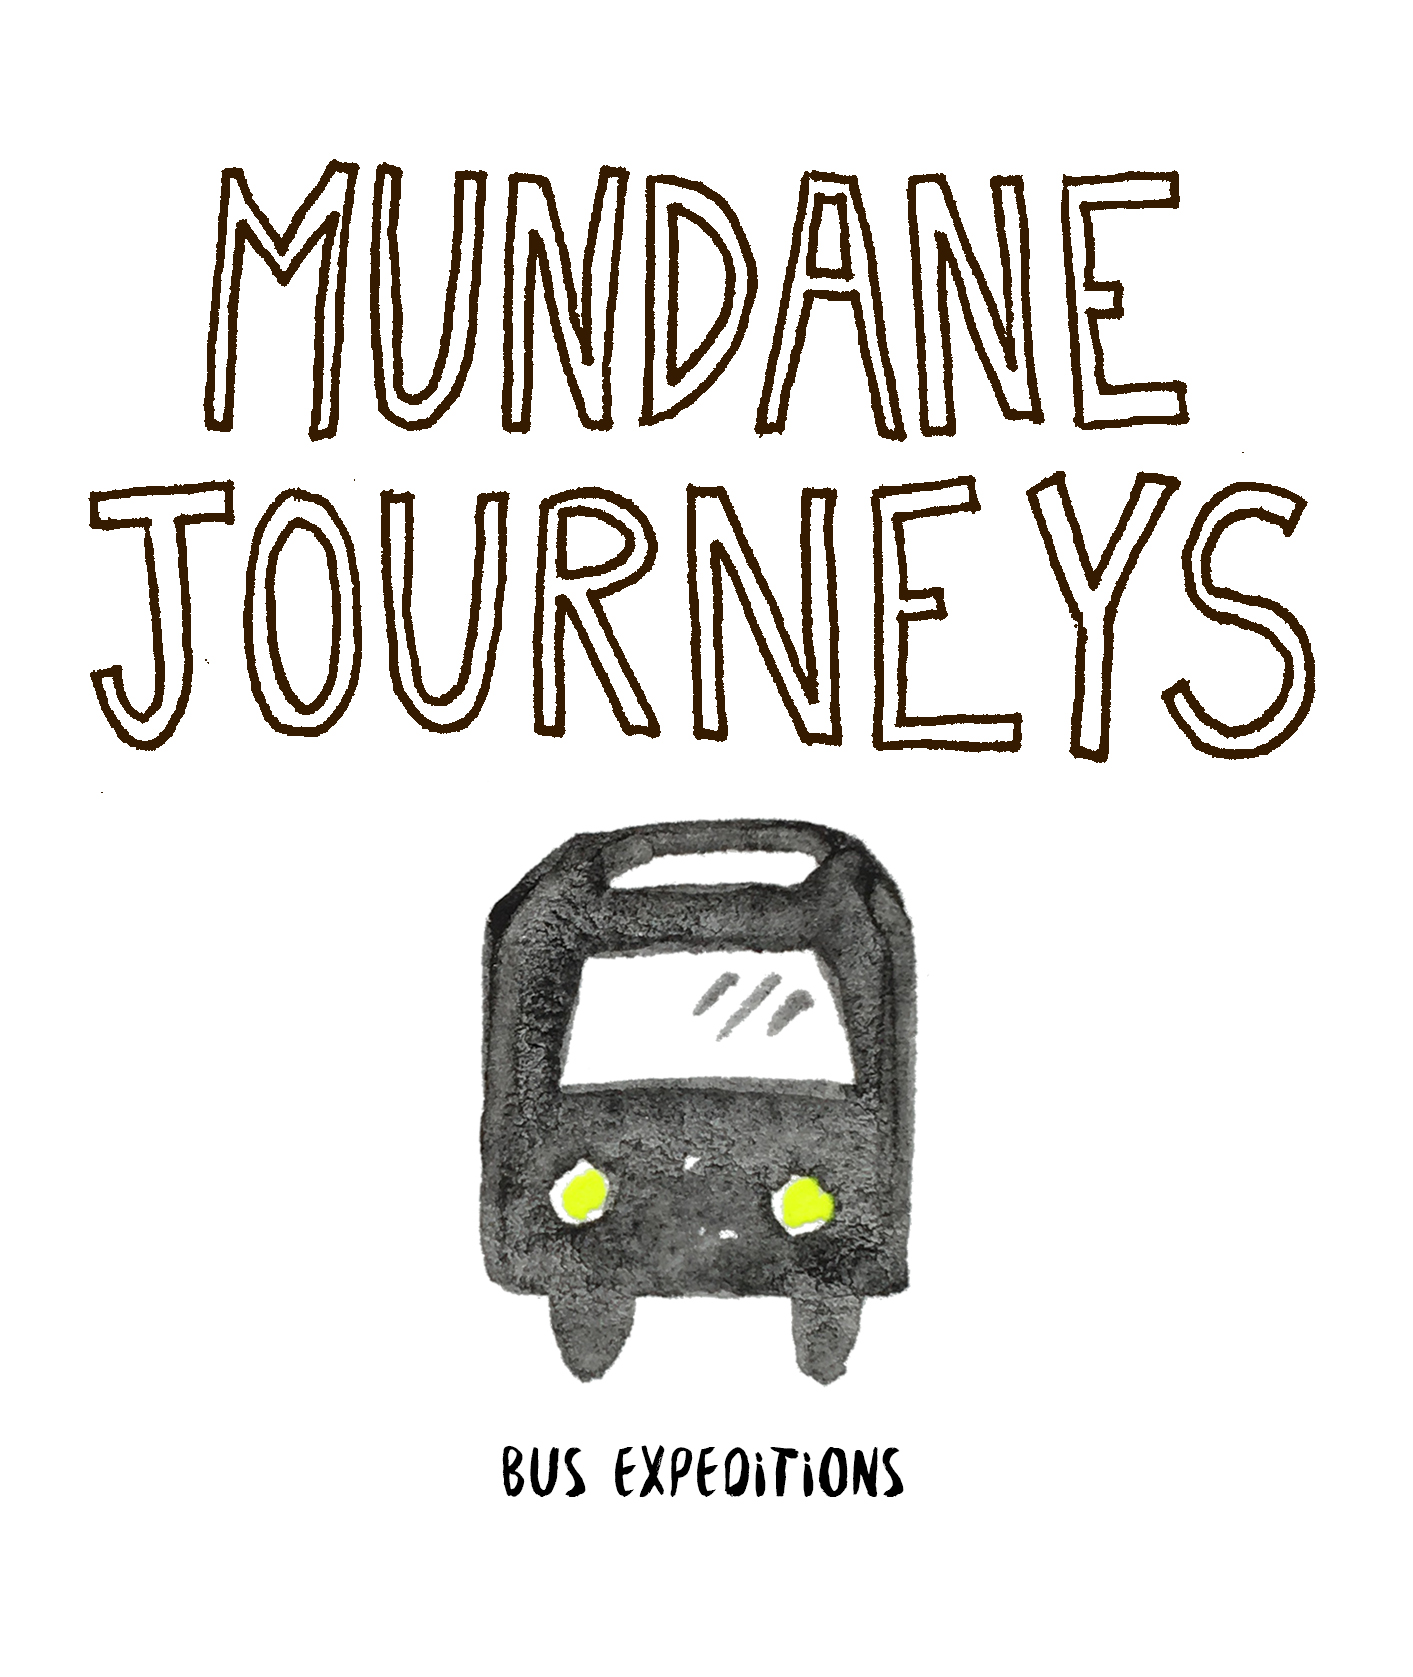 A bus-themed soundtrack was played enroute.  Listen to the bus soundtrack here.